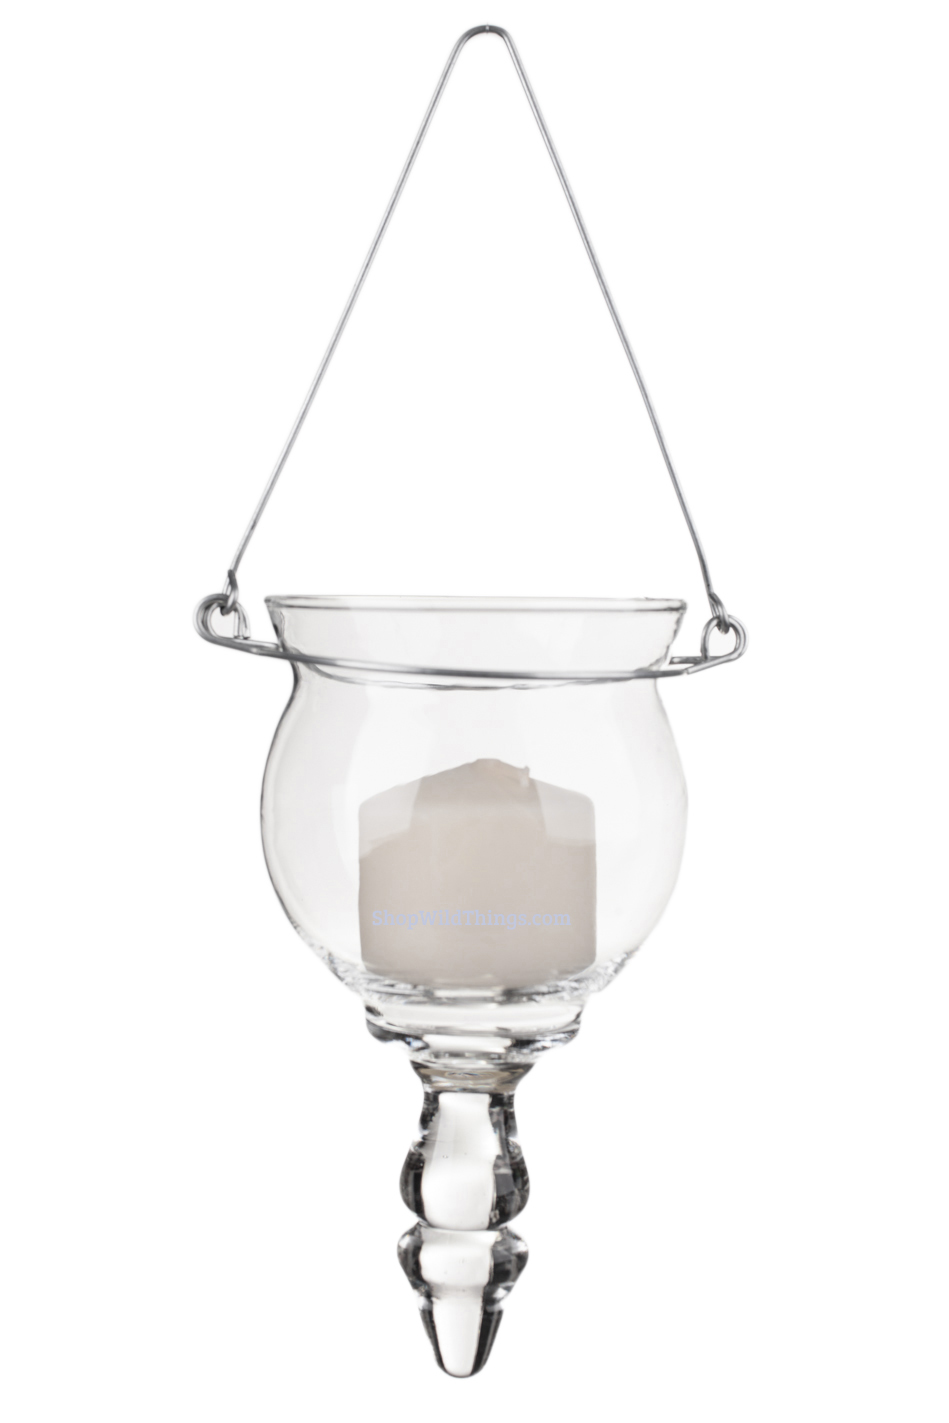 """Candle Holder - Hanging - """"Allie"""" - Clear Glass w/Wire Hanger"""